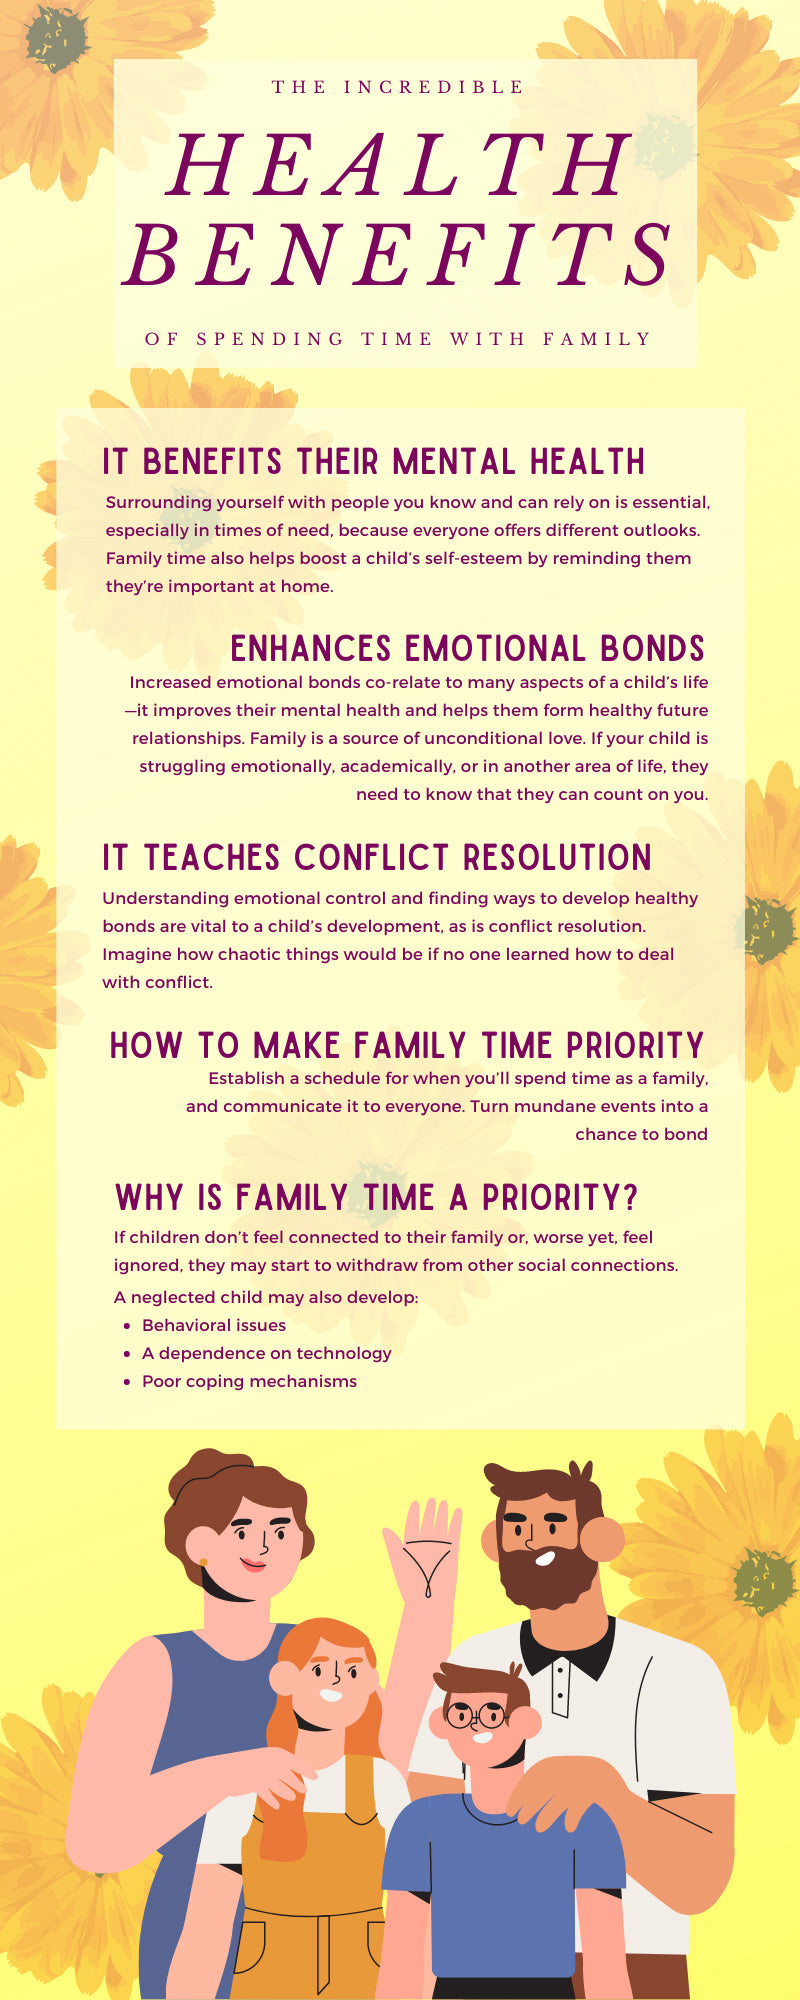 The Incredible Health Benefits of Spending Time With Family